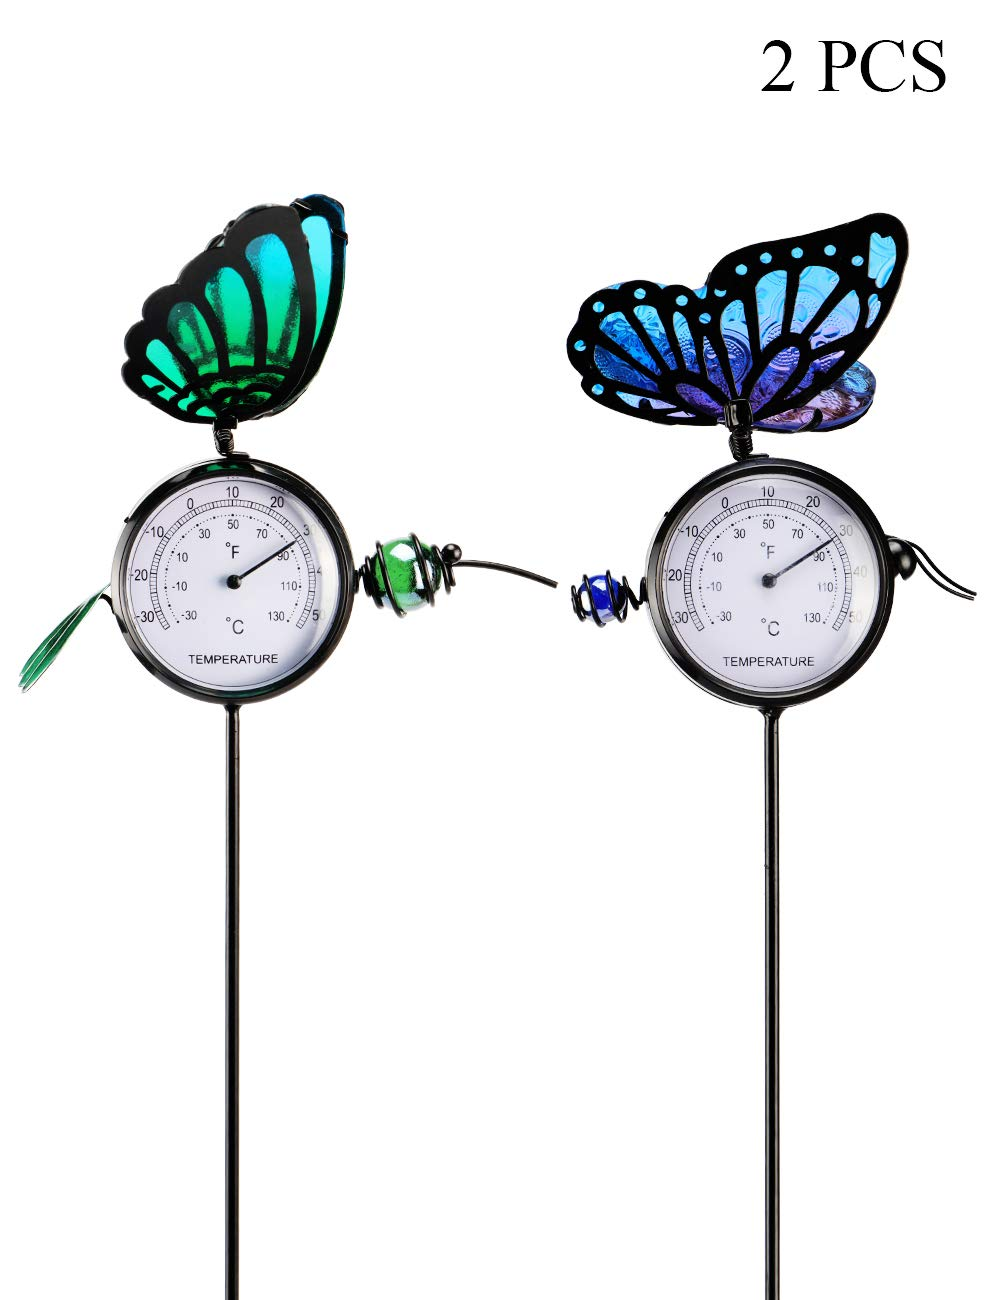 MUMTOP Thermometer Indoor Outdoor 14 Inch Patio Small Butterfly Waterproof Thermometer Does not Require Any Battery 2 Pcs